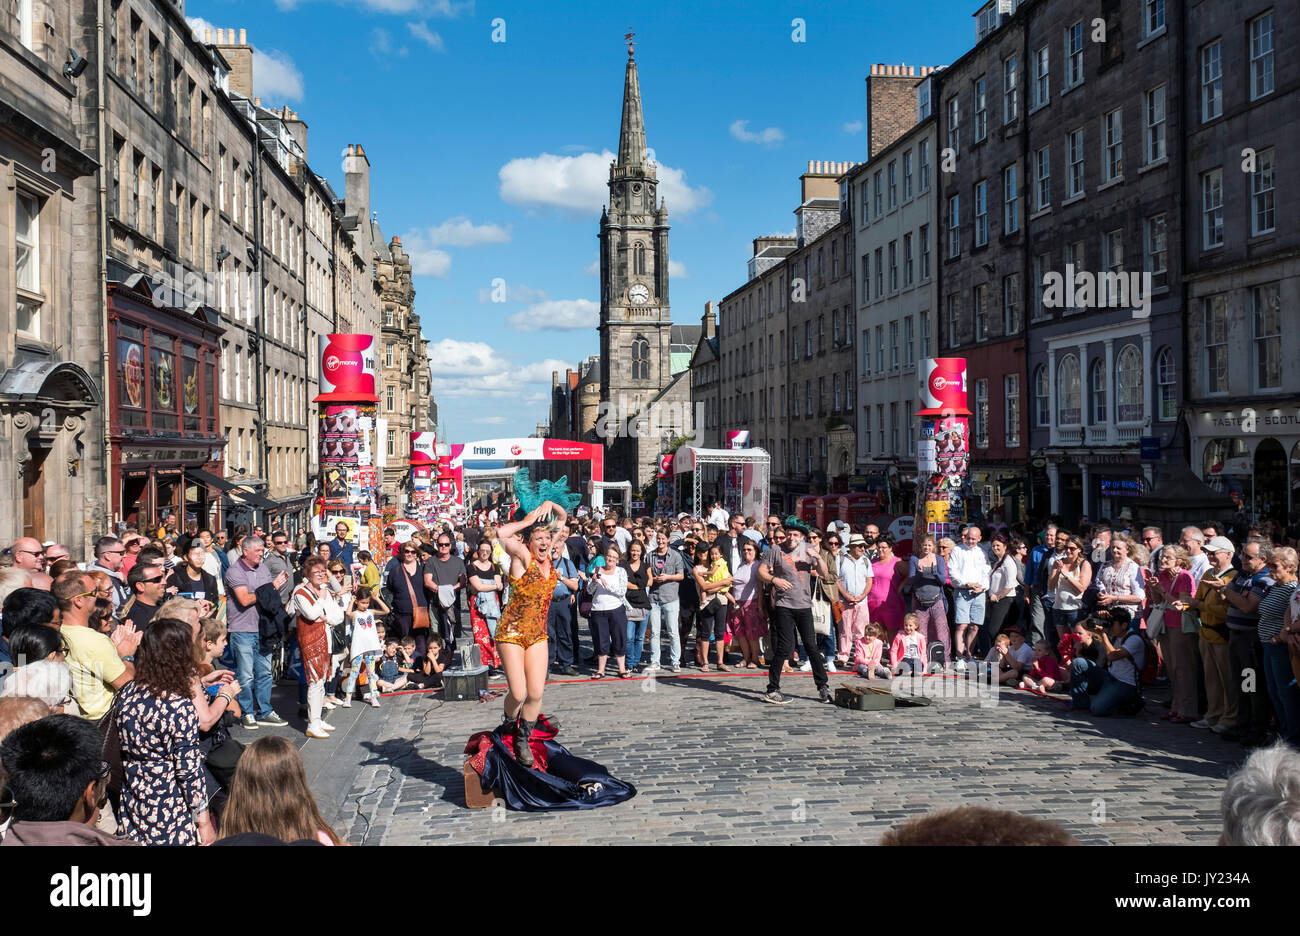 Street performers on the Royal Mile in Edinburgh part of the Edinburgh Festival Fringe, the largest arts festival in the world. - Stock Image